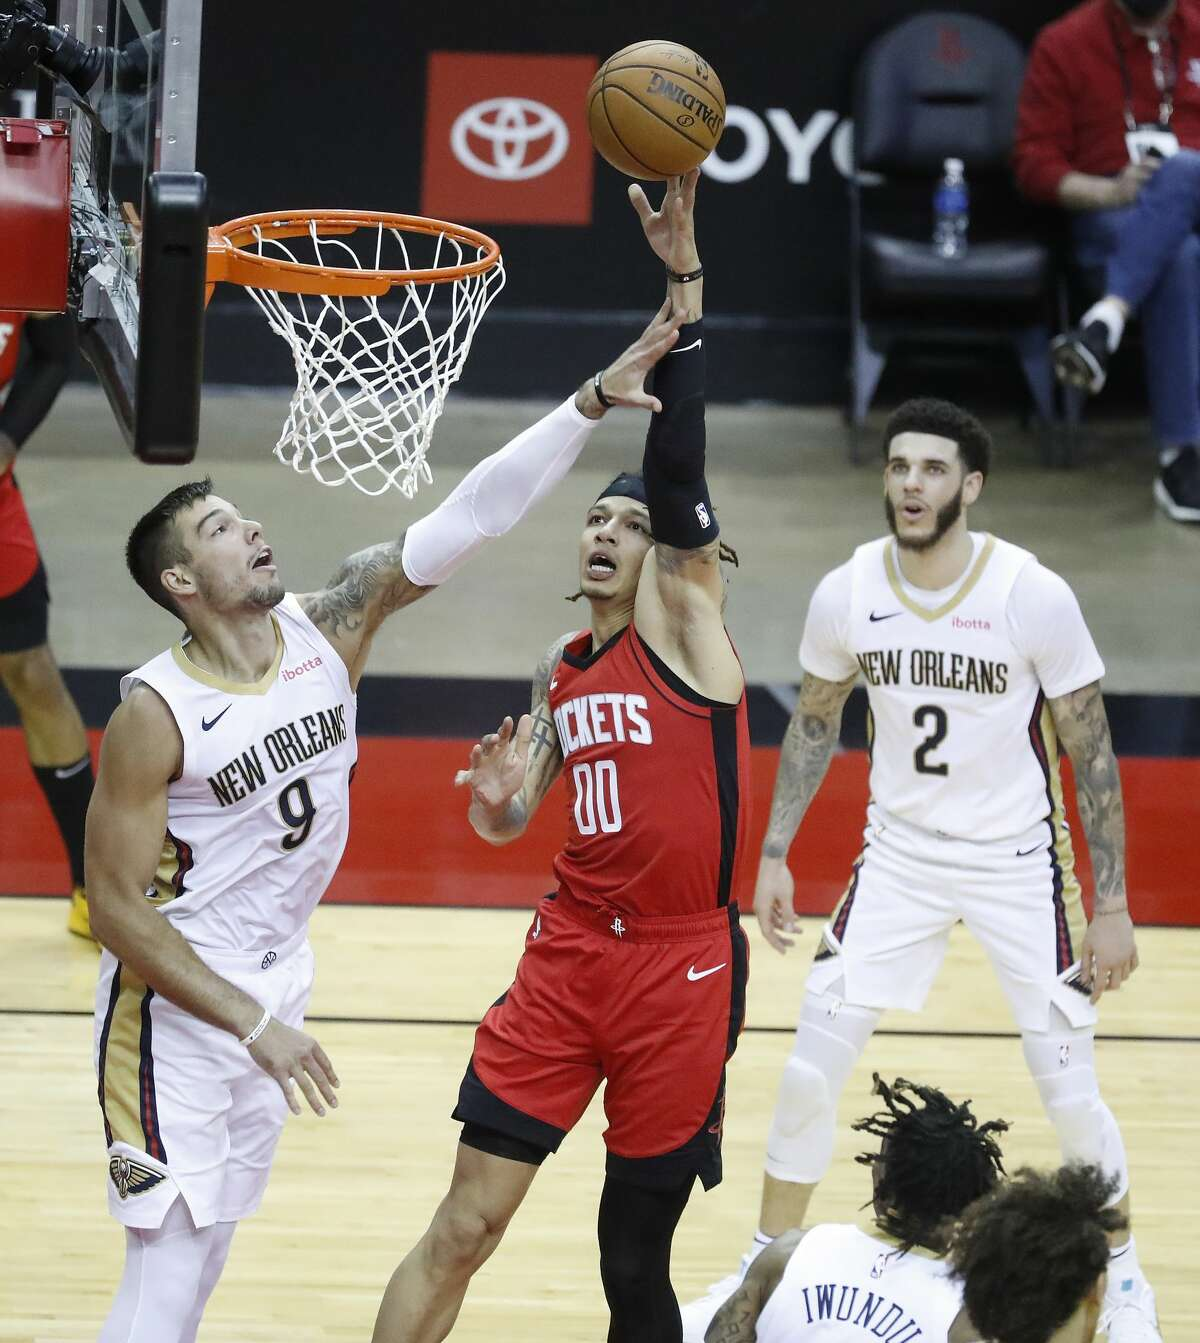 Houston Rockets forward D.J. Wilson (00) goes up for a basket against New Orleans Pelicans center Willy Hernangomez (9) during the second half of an NBA basketball game at Toyota Center, Sunday, April 4, 2021.